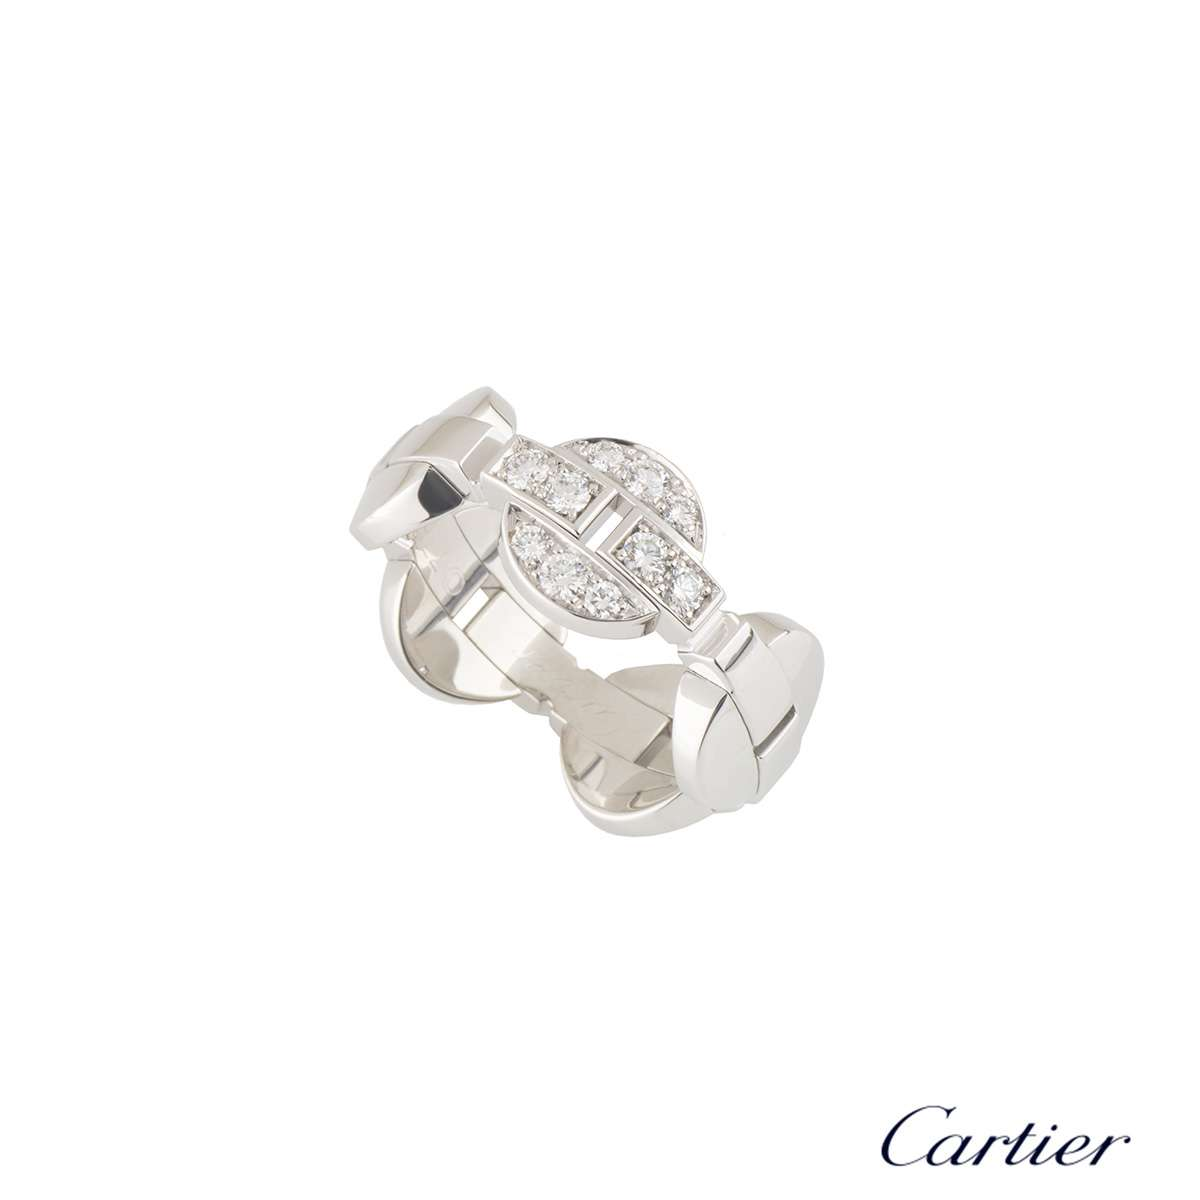 Cartier White Gold Diamond Himalia Ring N4193253